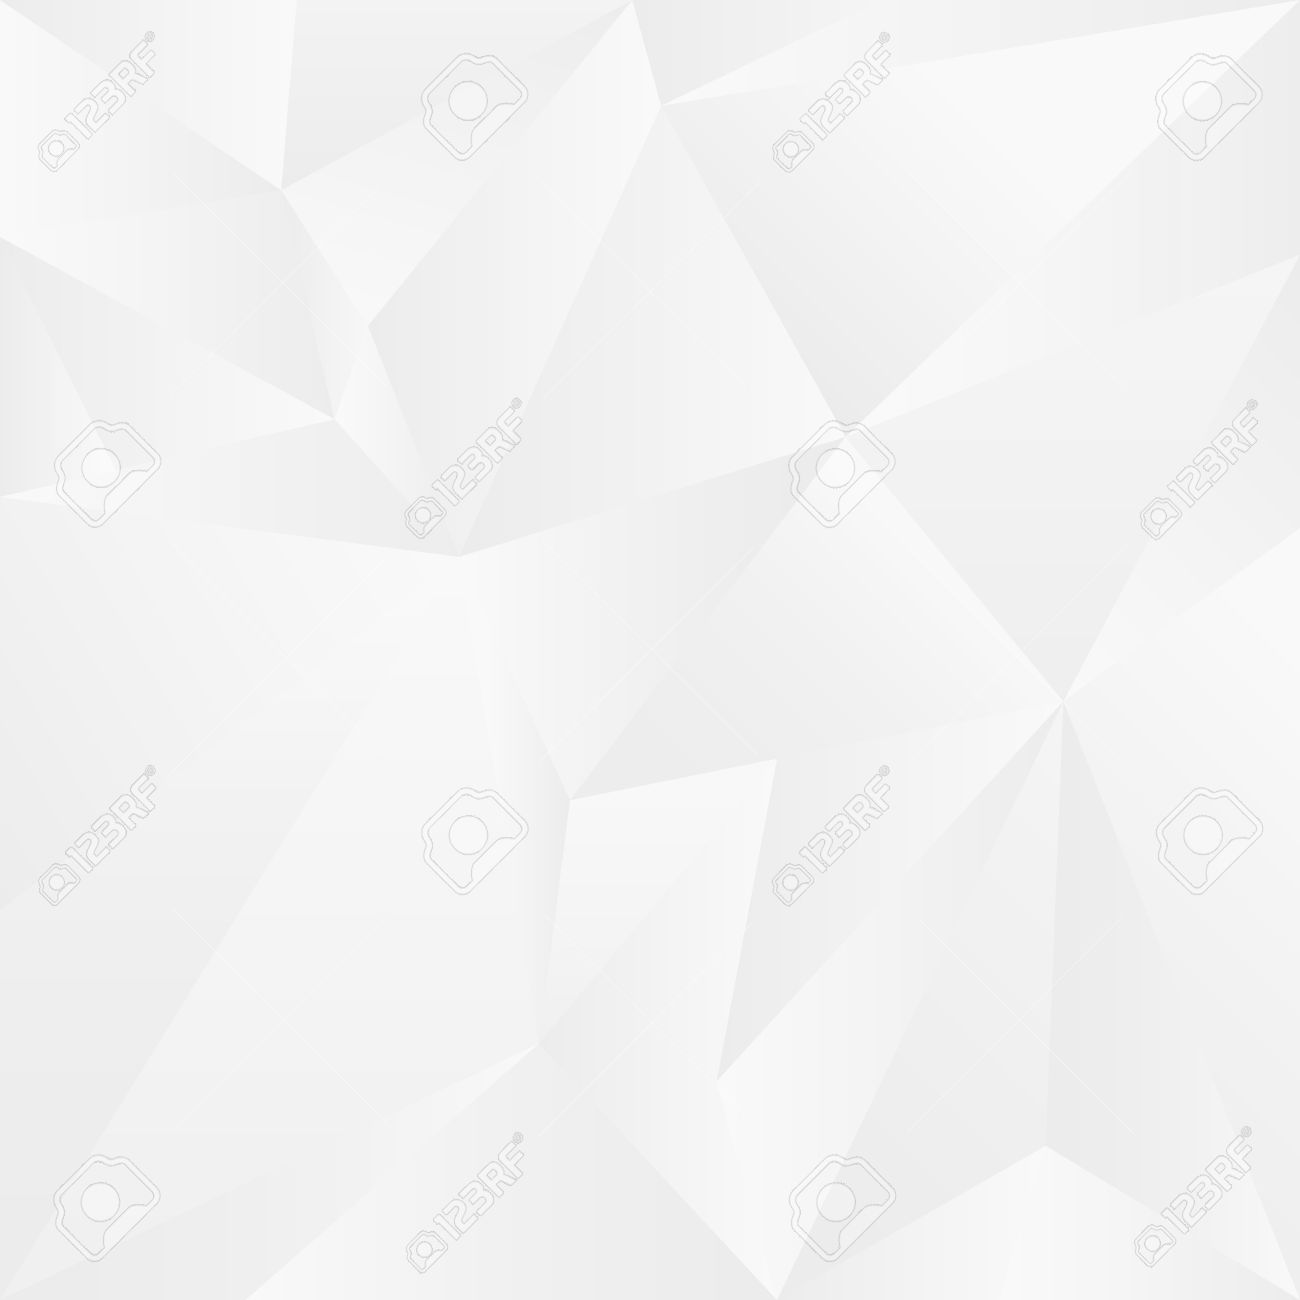 1300x1300 Abstract White Geometric Background. Vector Illustration